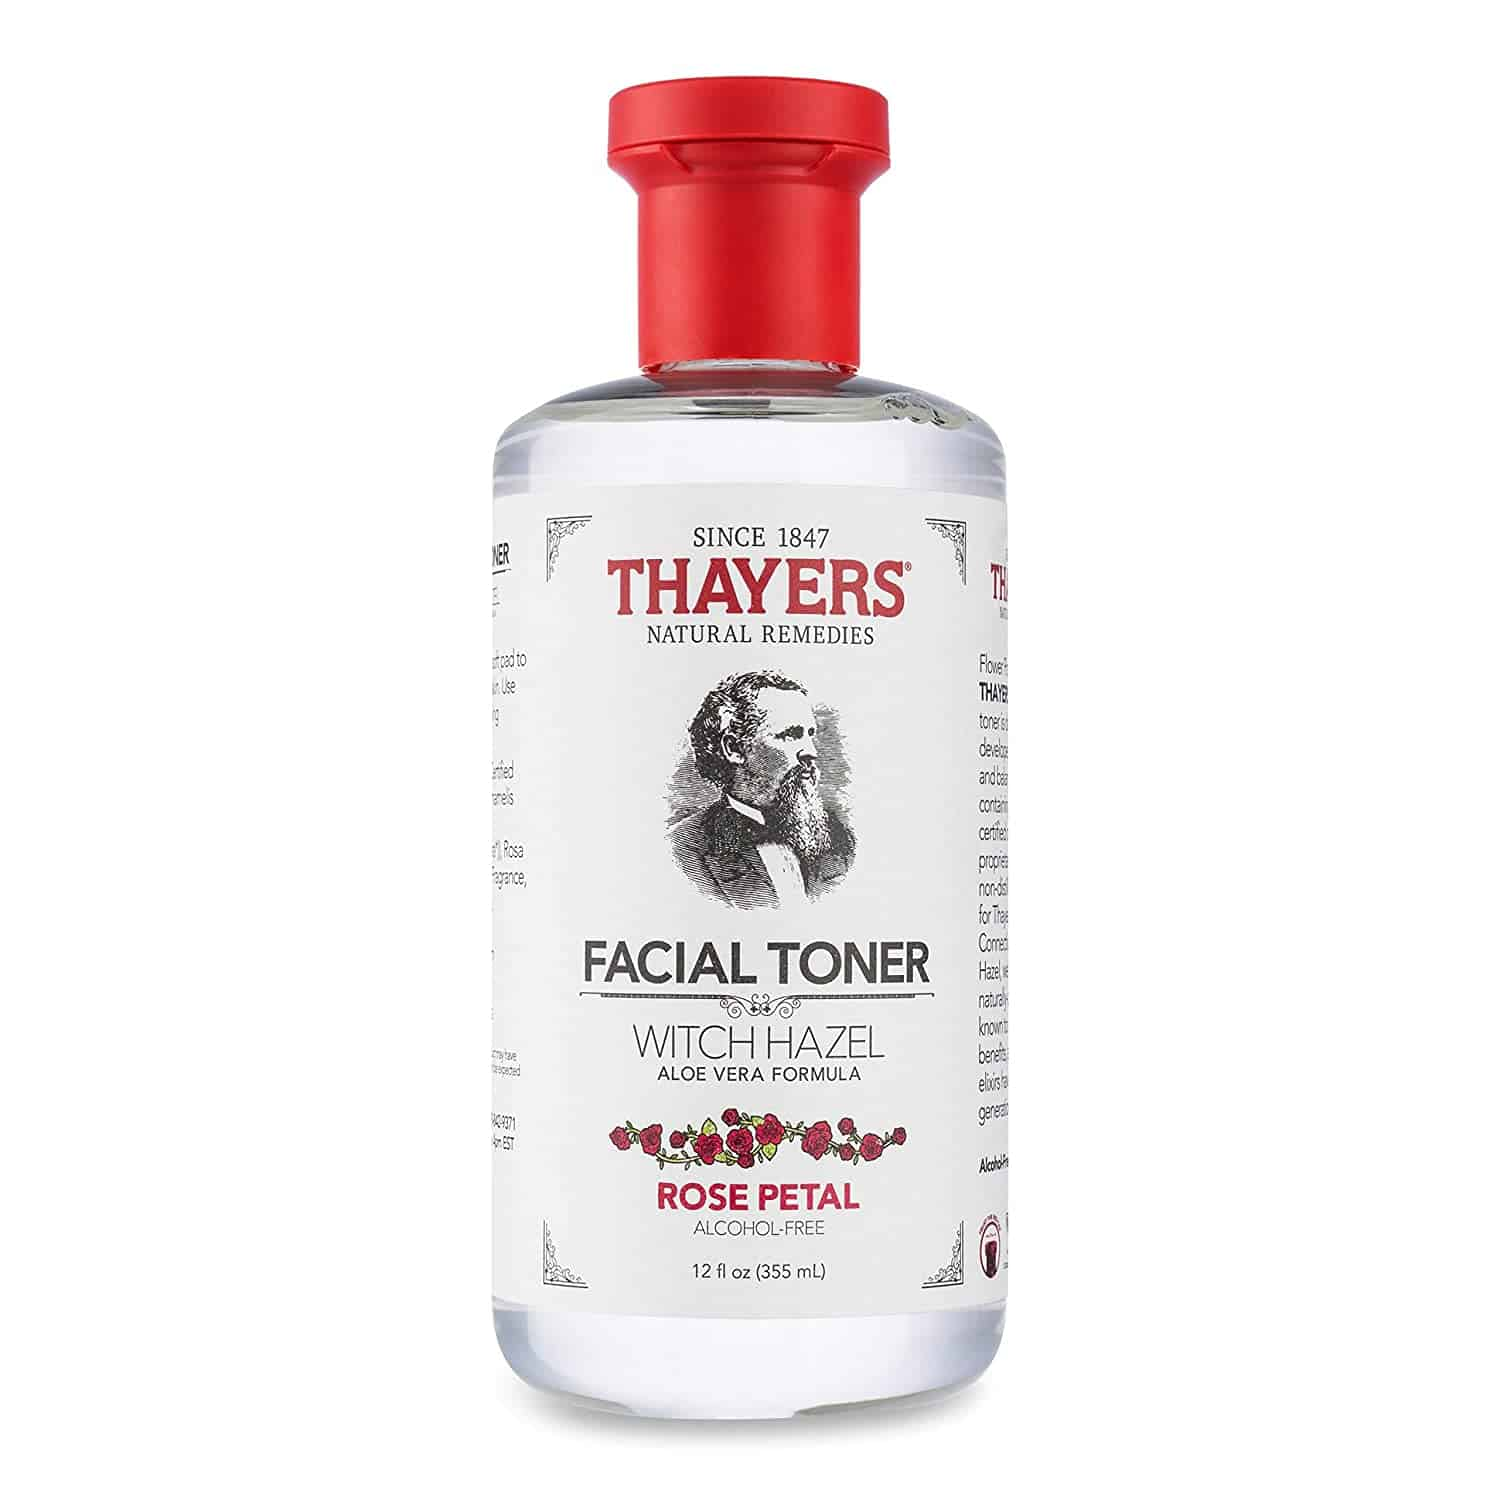 Thayers Alcohol Free Rose Petal Witch Hazel Facial Toner